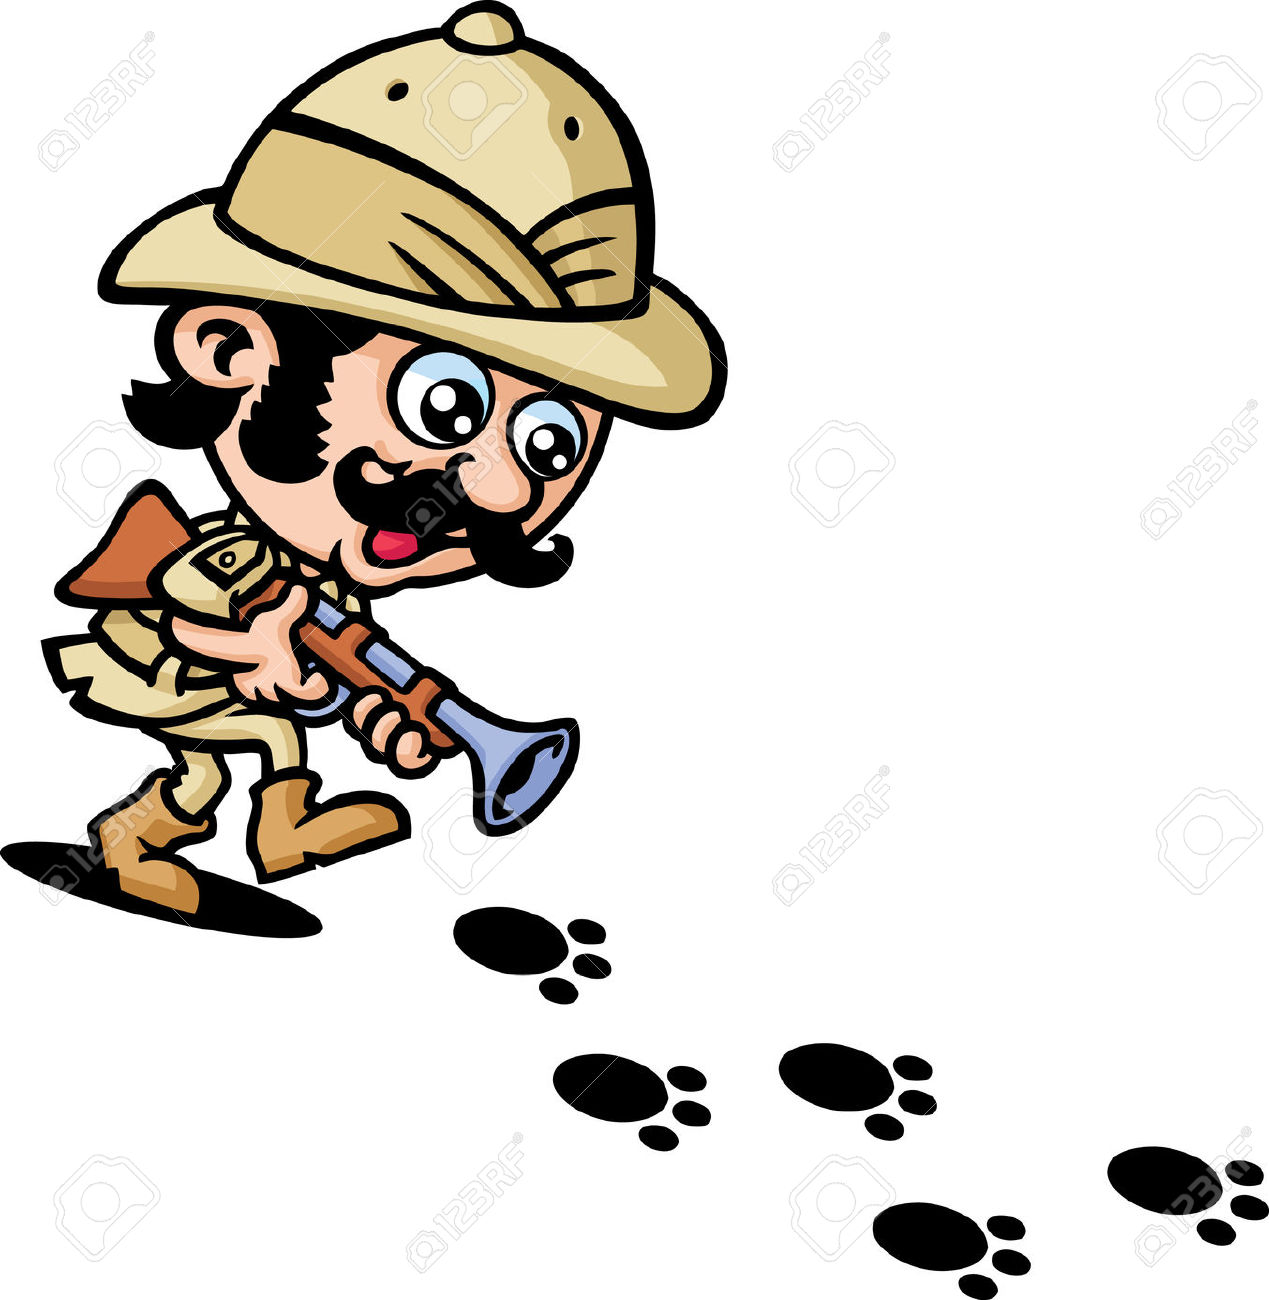 Cliparts free download best. Hunter clipart net